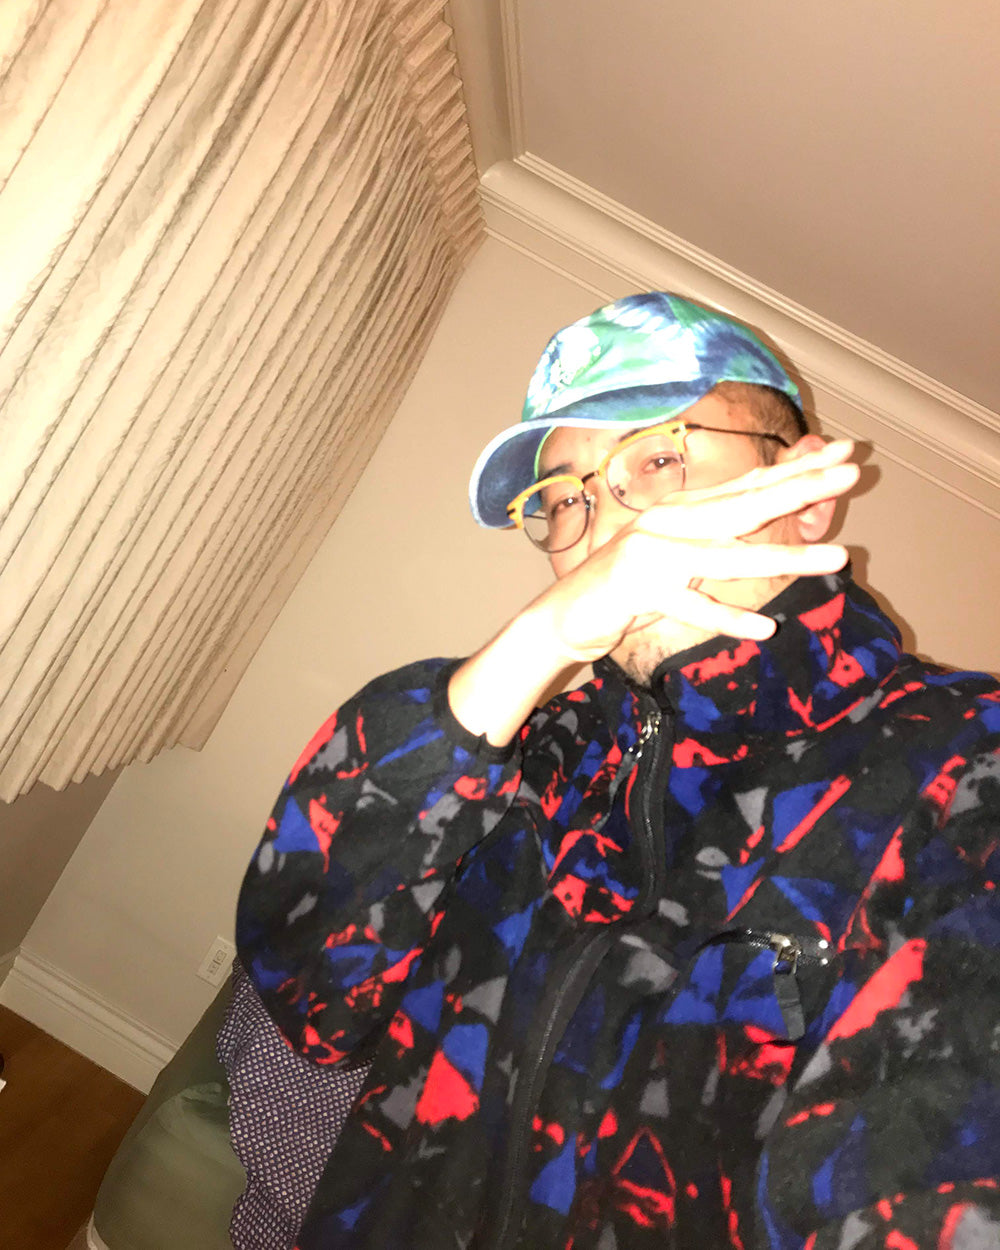 SPITGAN WEBZINE #3 Photo 11. Selfie of Nick D the ninja rockin' a STR3AK Clothing tie dye cap. Vancouver BC